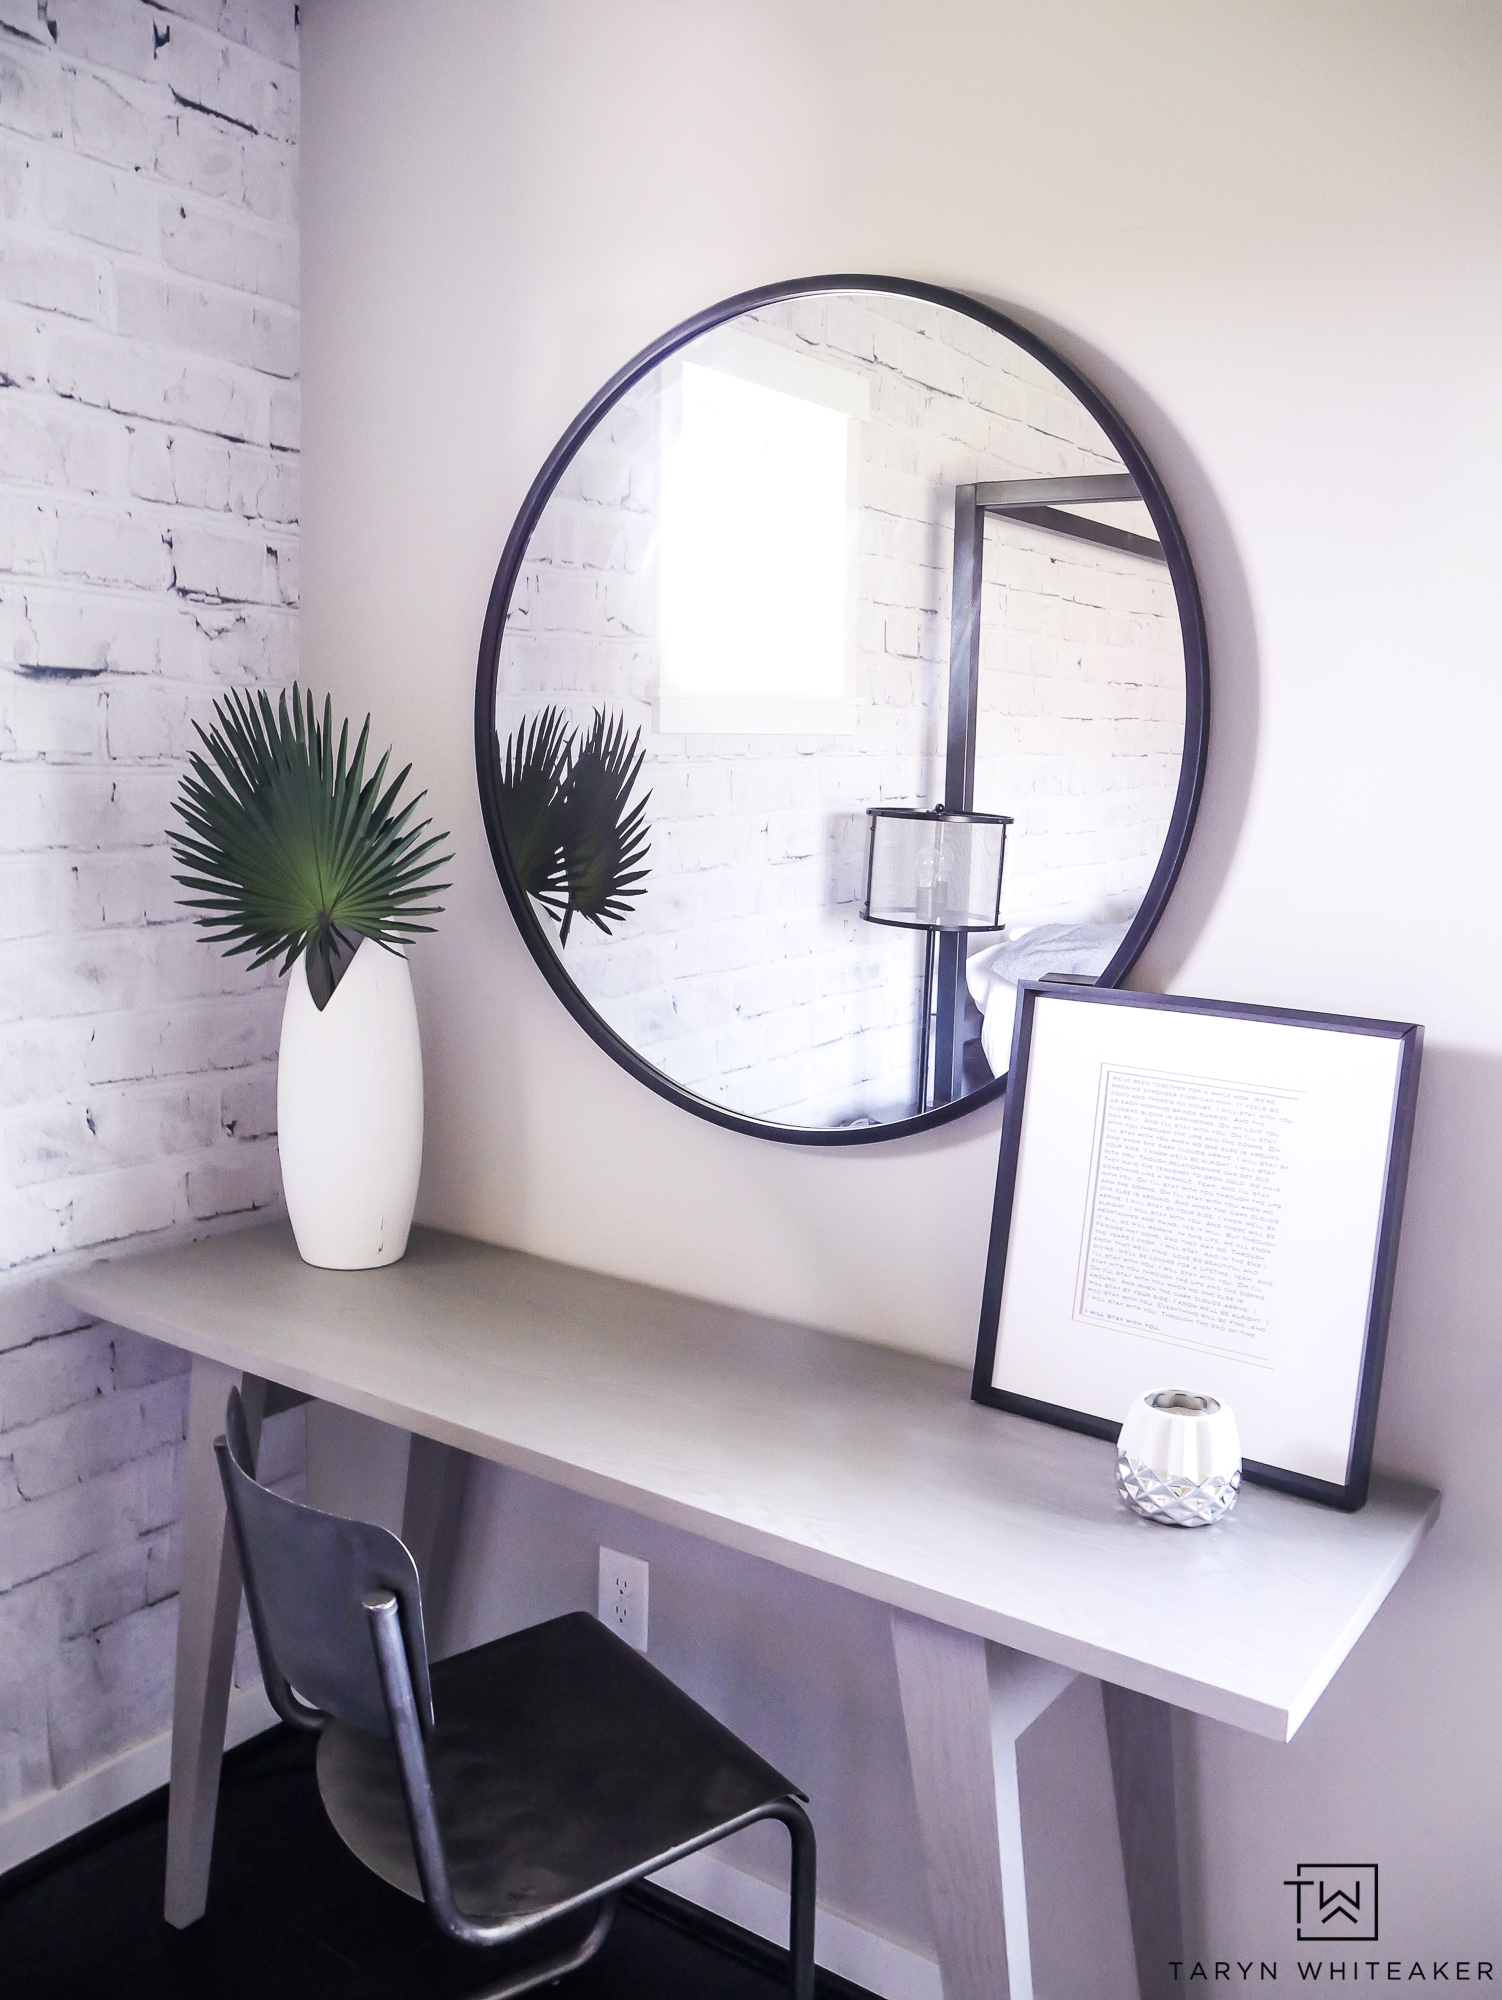 Turn a born corner into a functional space with this cute master bedroom desk decor! Love this clean modern look for a room, clutter free is the way to go!